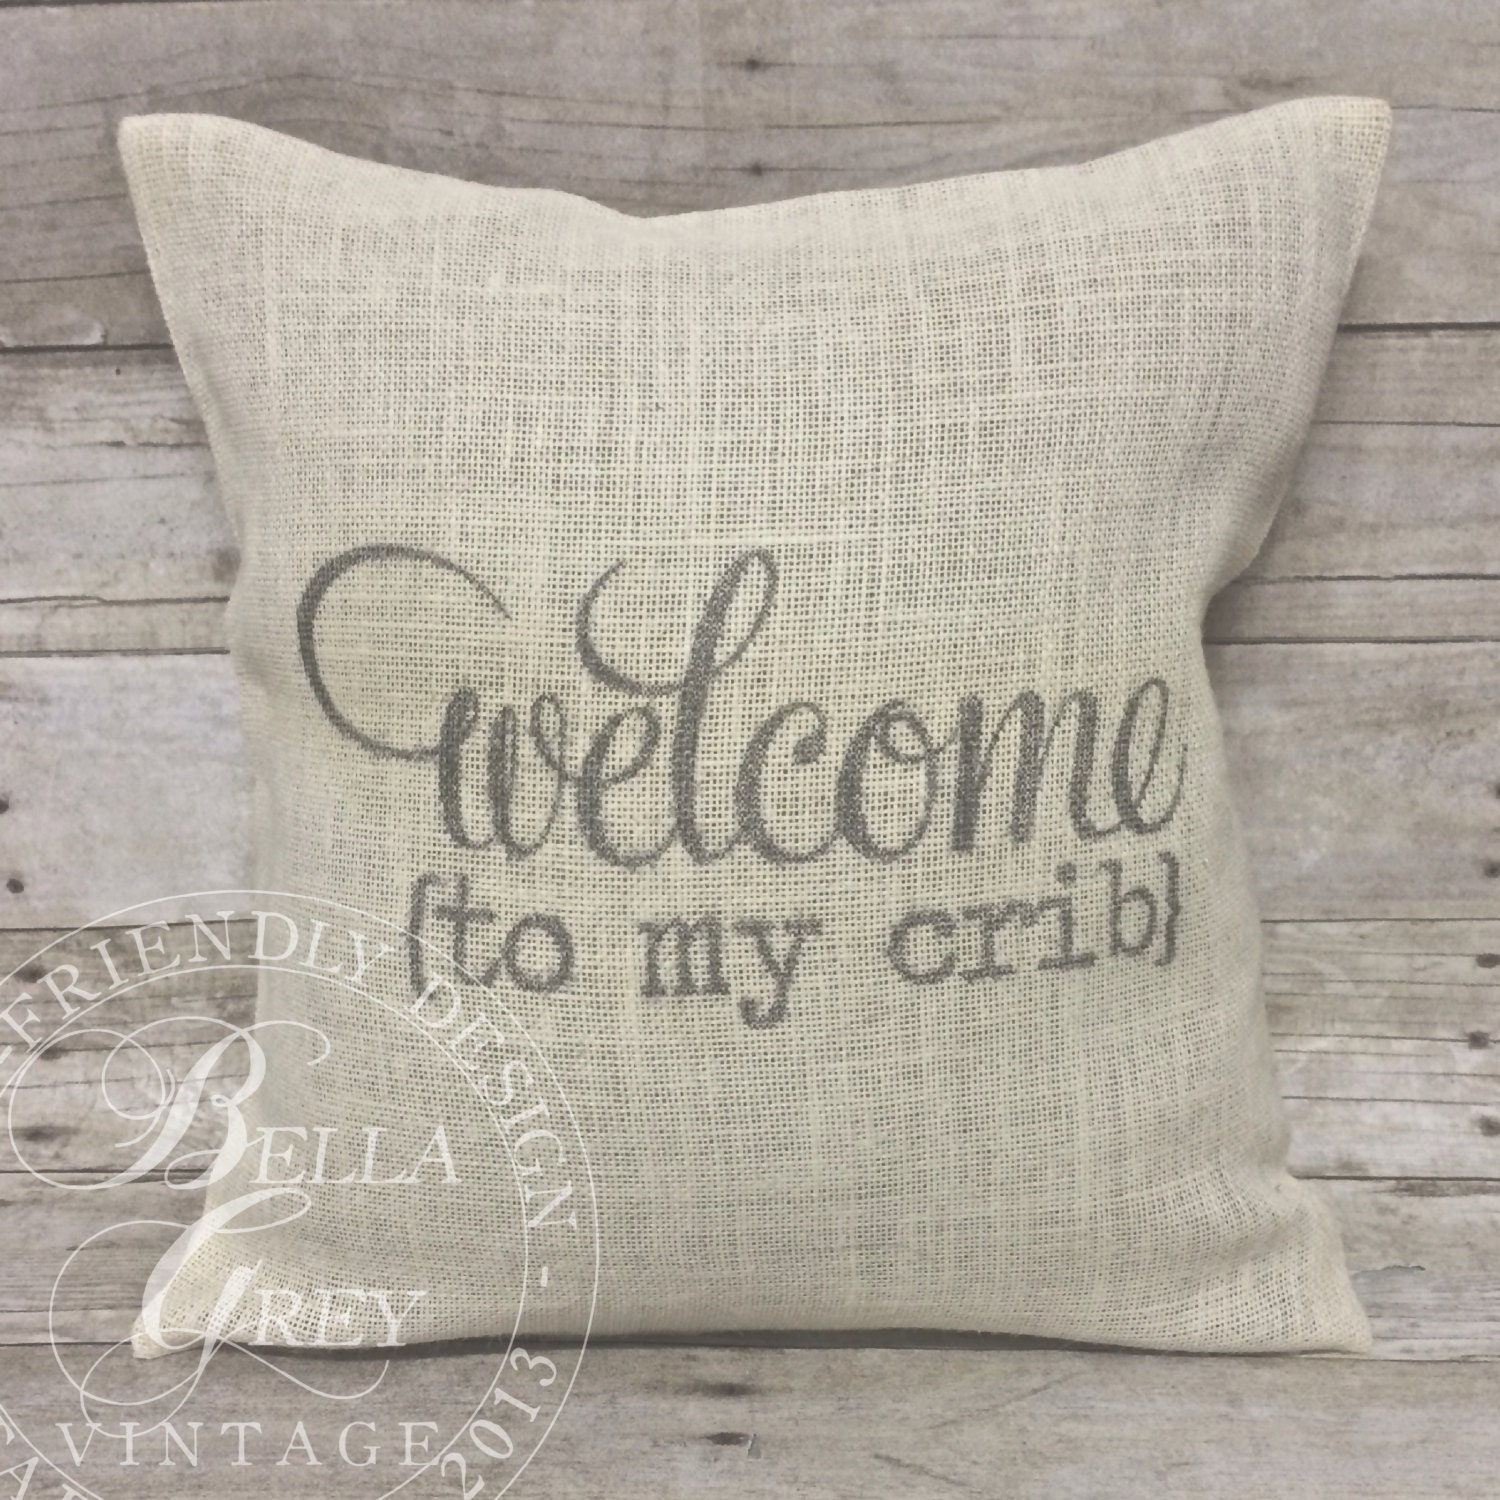 Wel e to My Crib Burlap Pillow Cover Shabby Chic Nursery